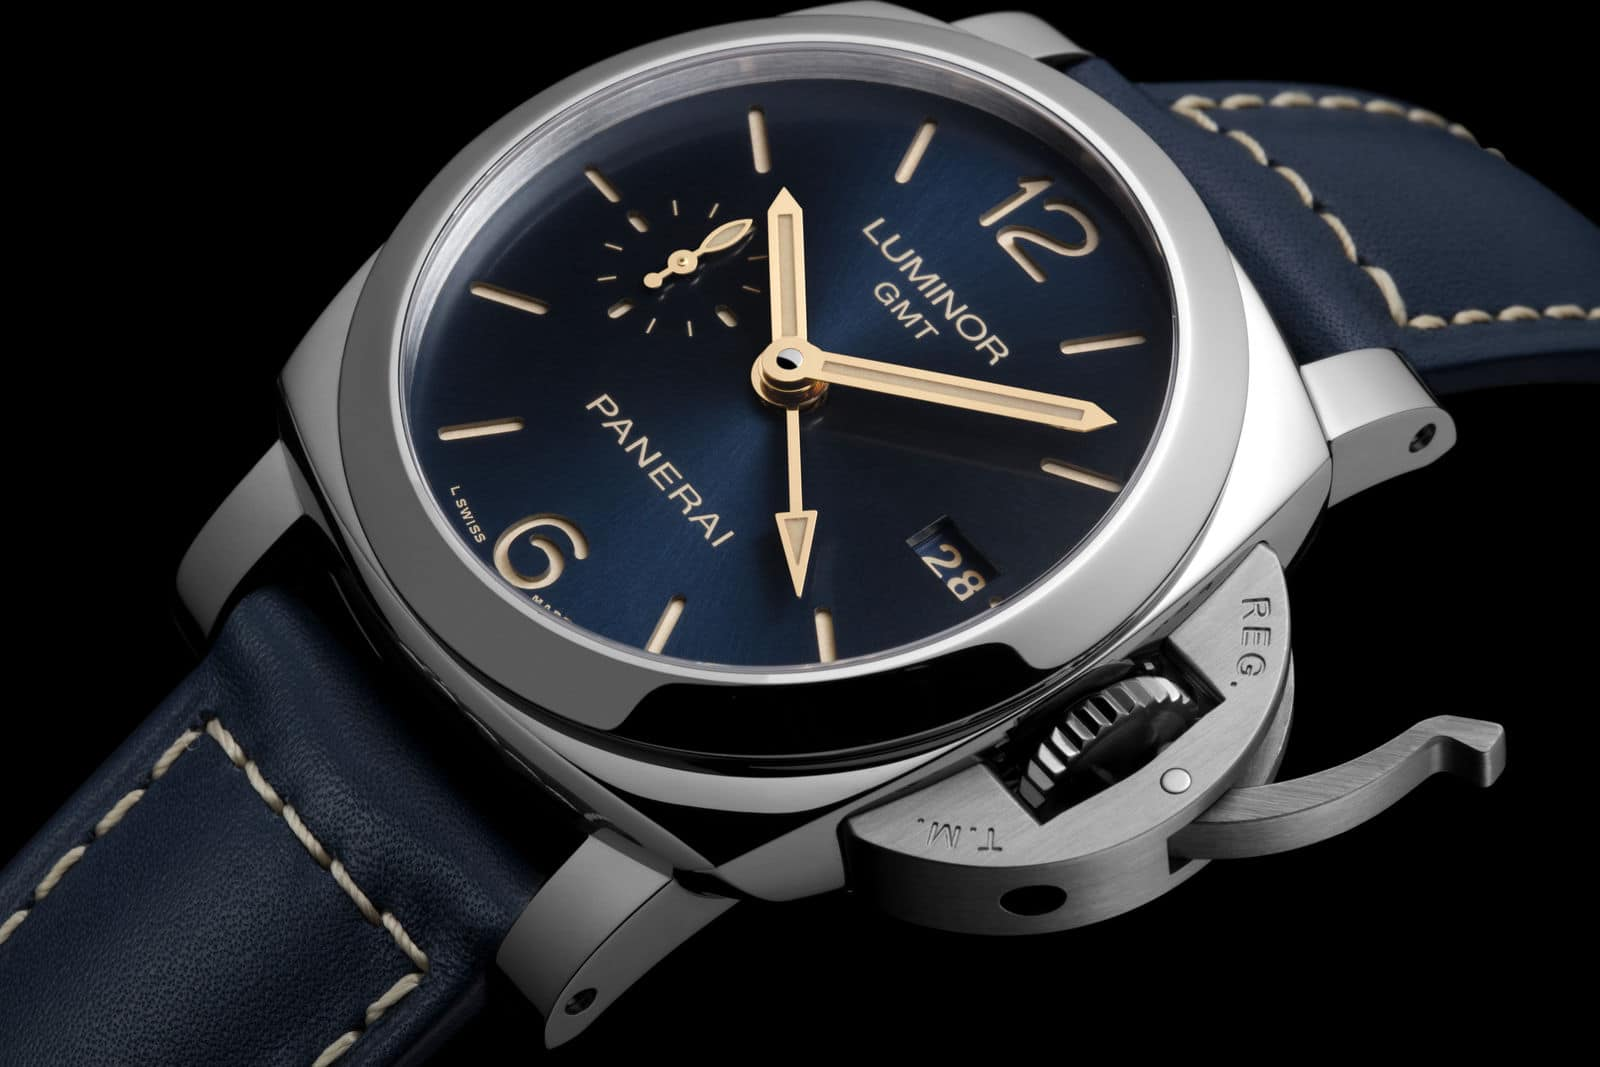 Luminor 1950 3 Days GMT Automatic Acciaio – 42 mm